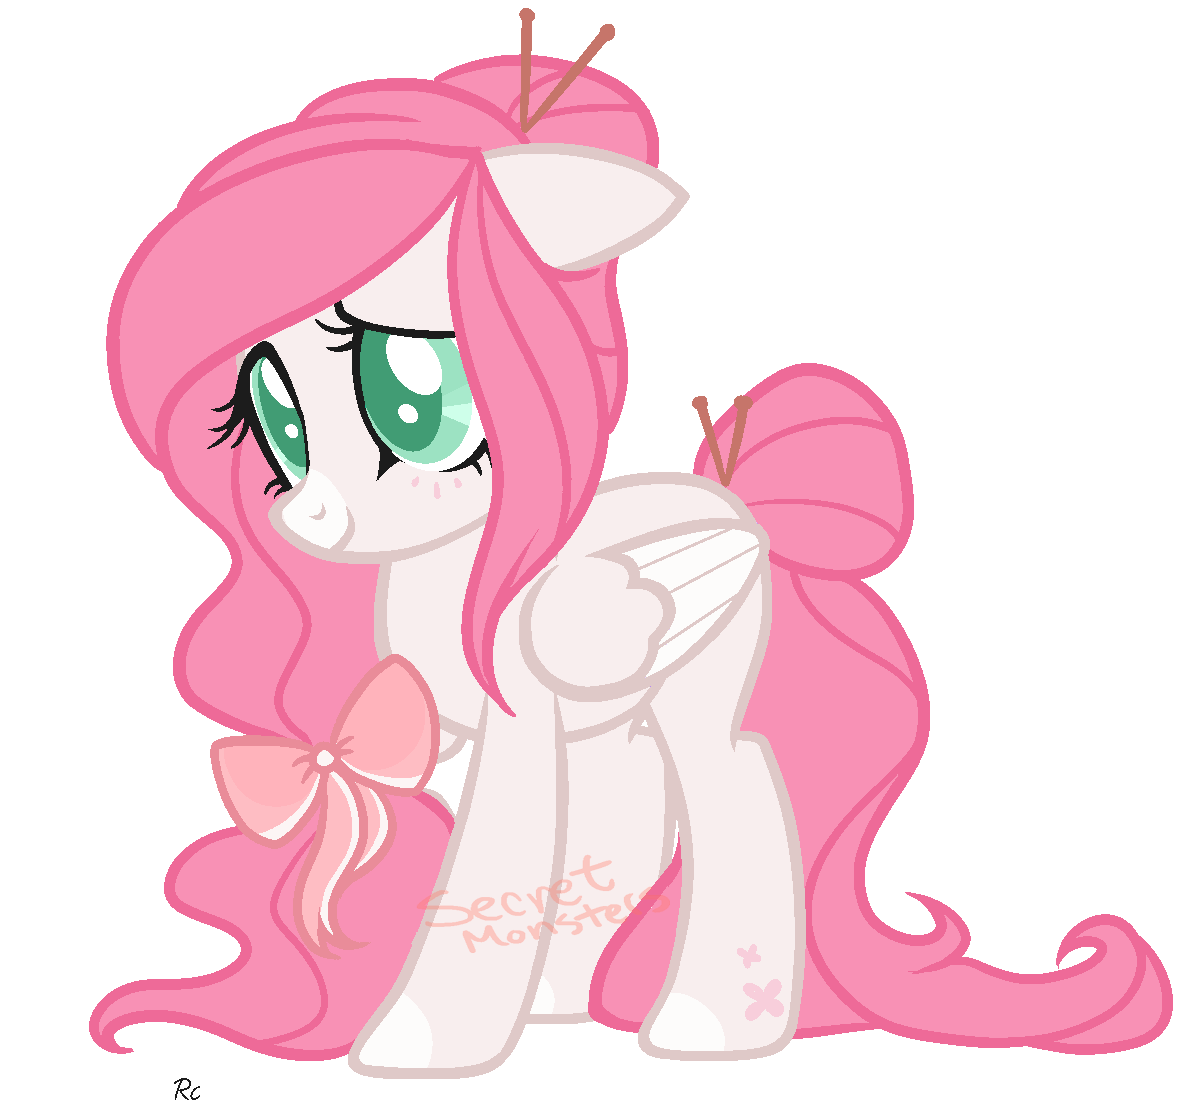 Sweet Rosie by SecretMonsters